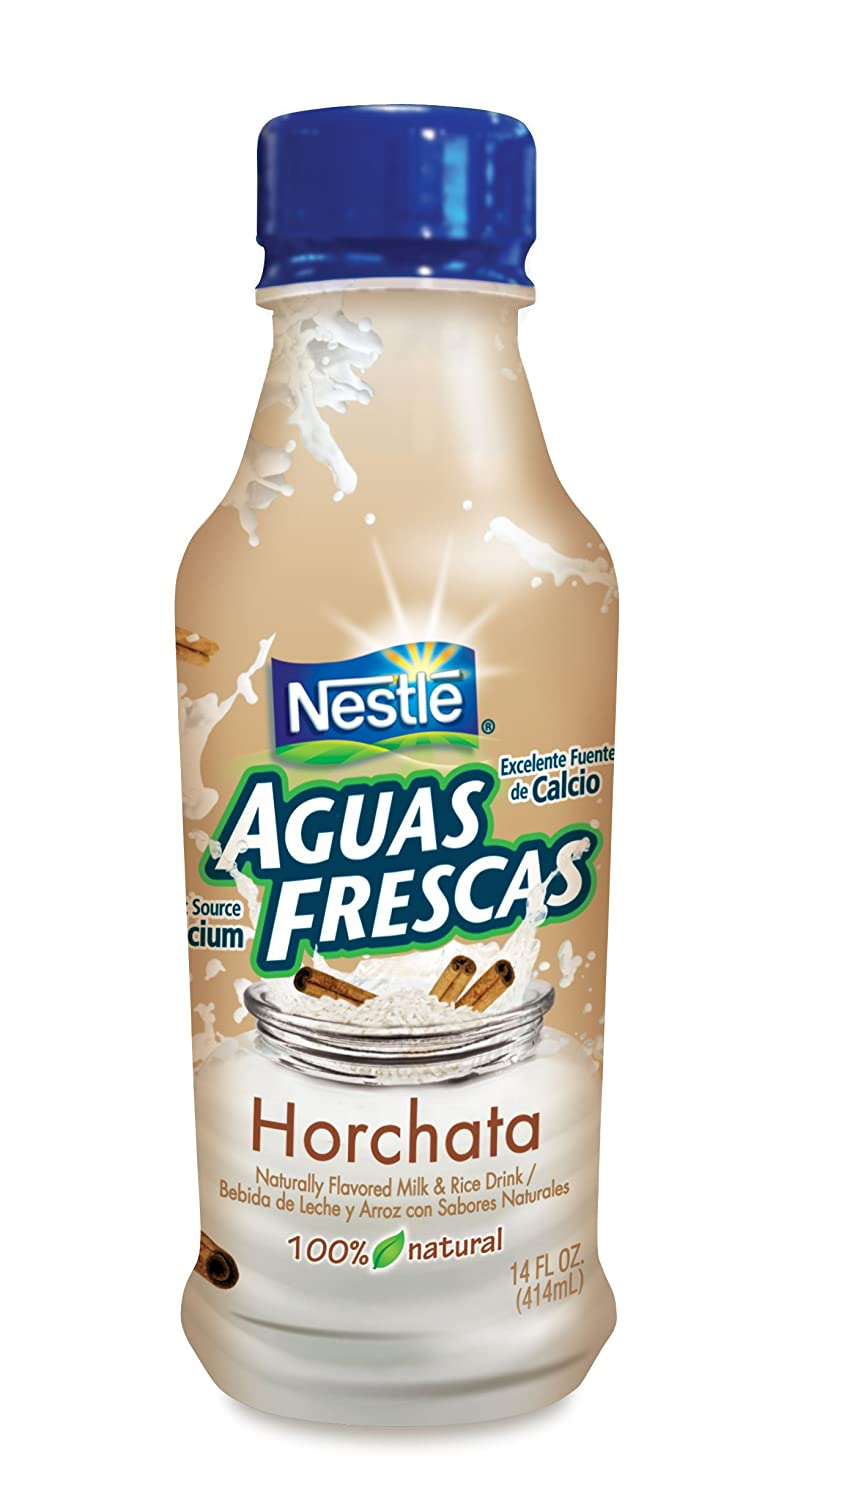 Amazon.com : Nestle Aguas Frescas Horchata-Pet, 14-Ounce (Pack of 6) : Powdered Drink Mixes : Grocery & Gourmet Food